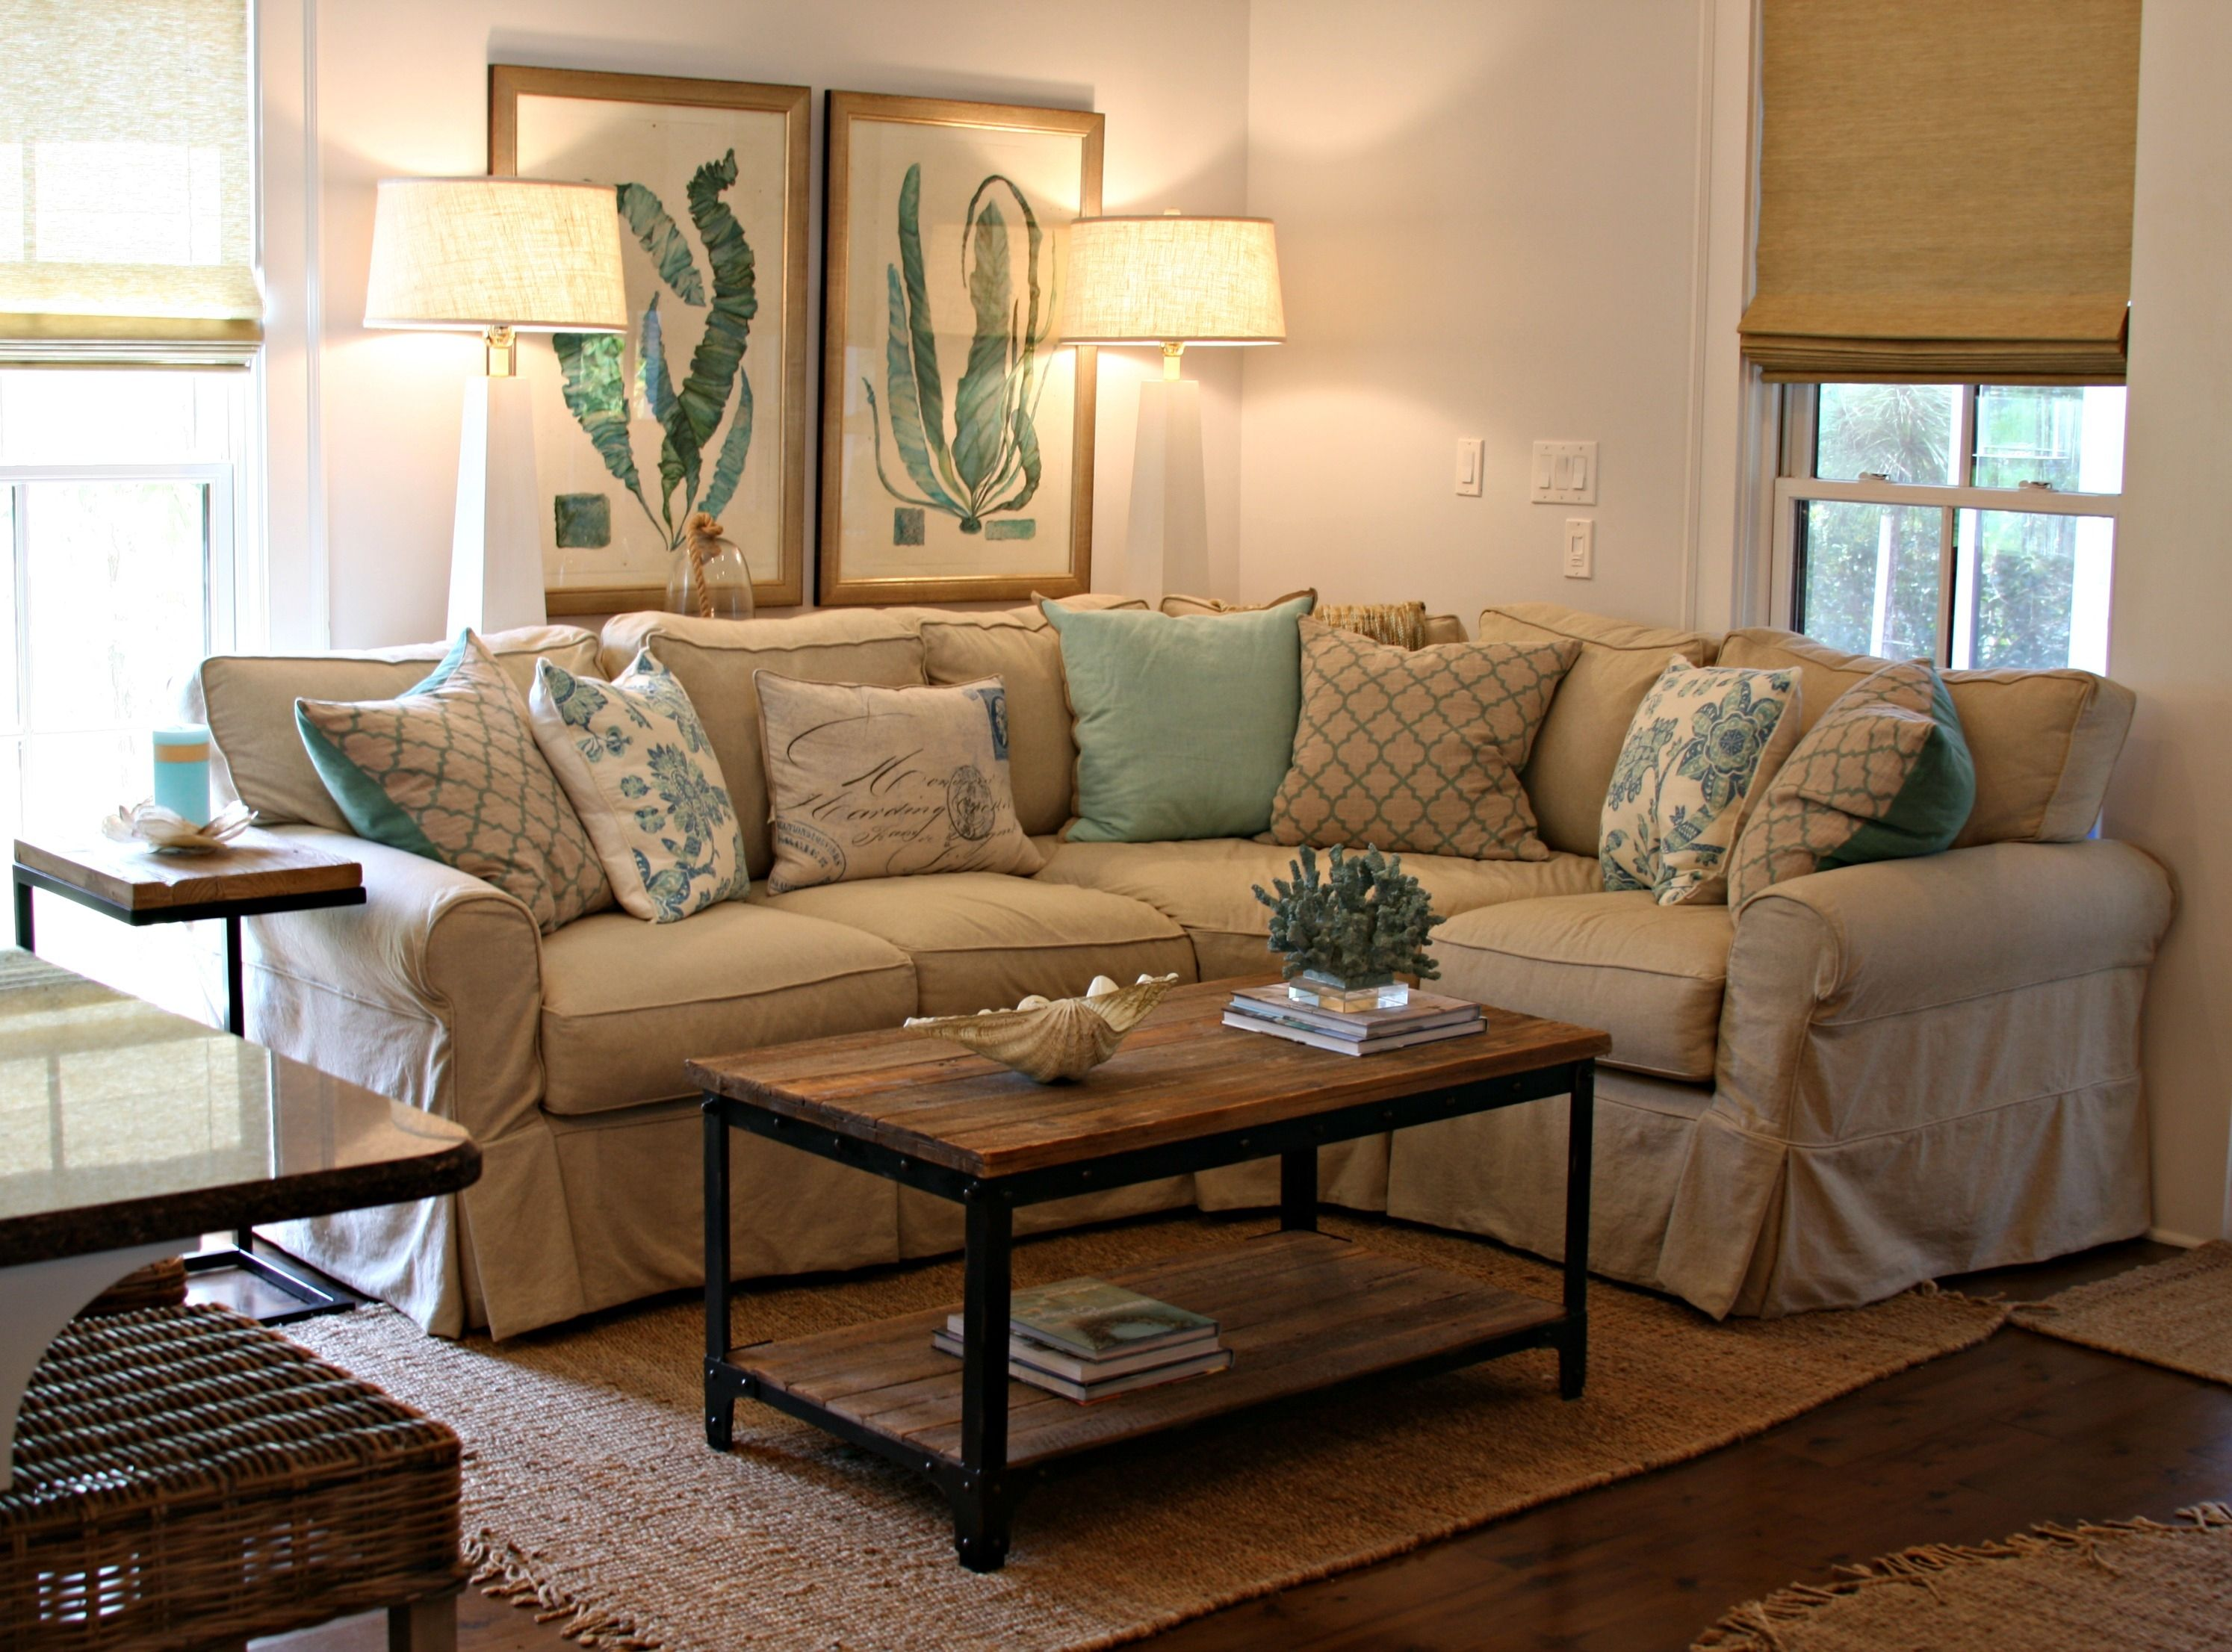 French Country Style Sectional Sofas   http://ml2r.com   Pinterest ...